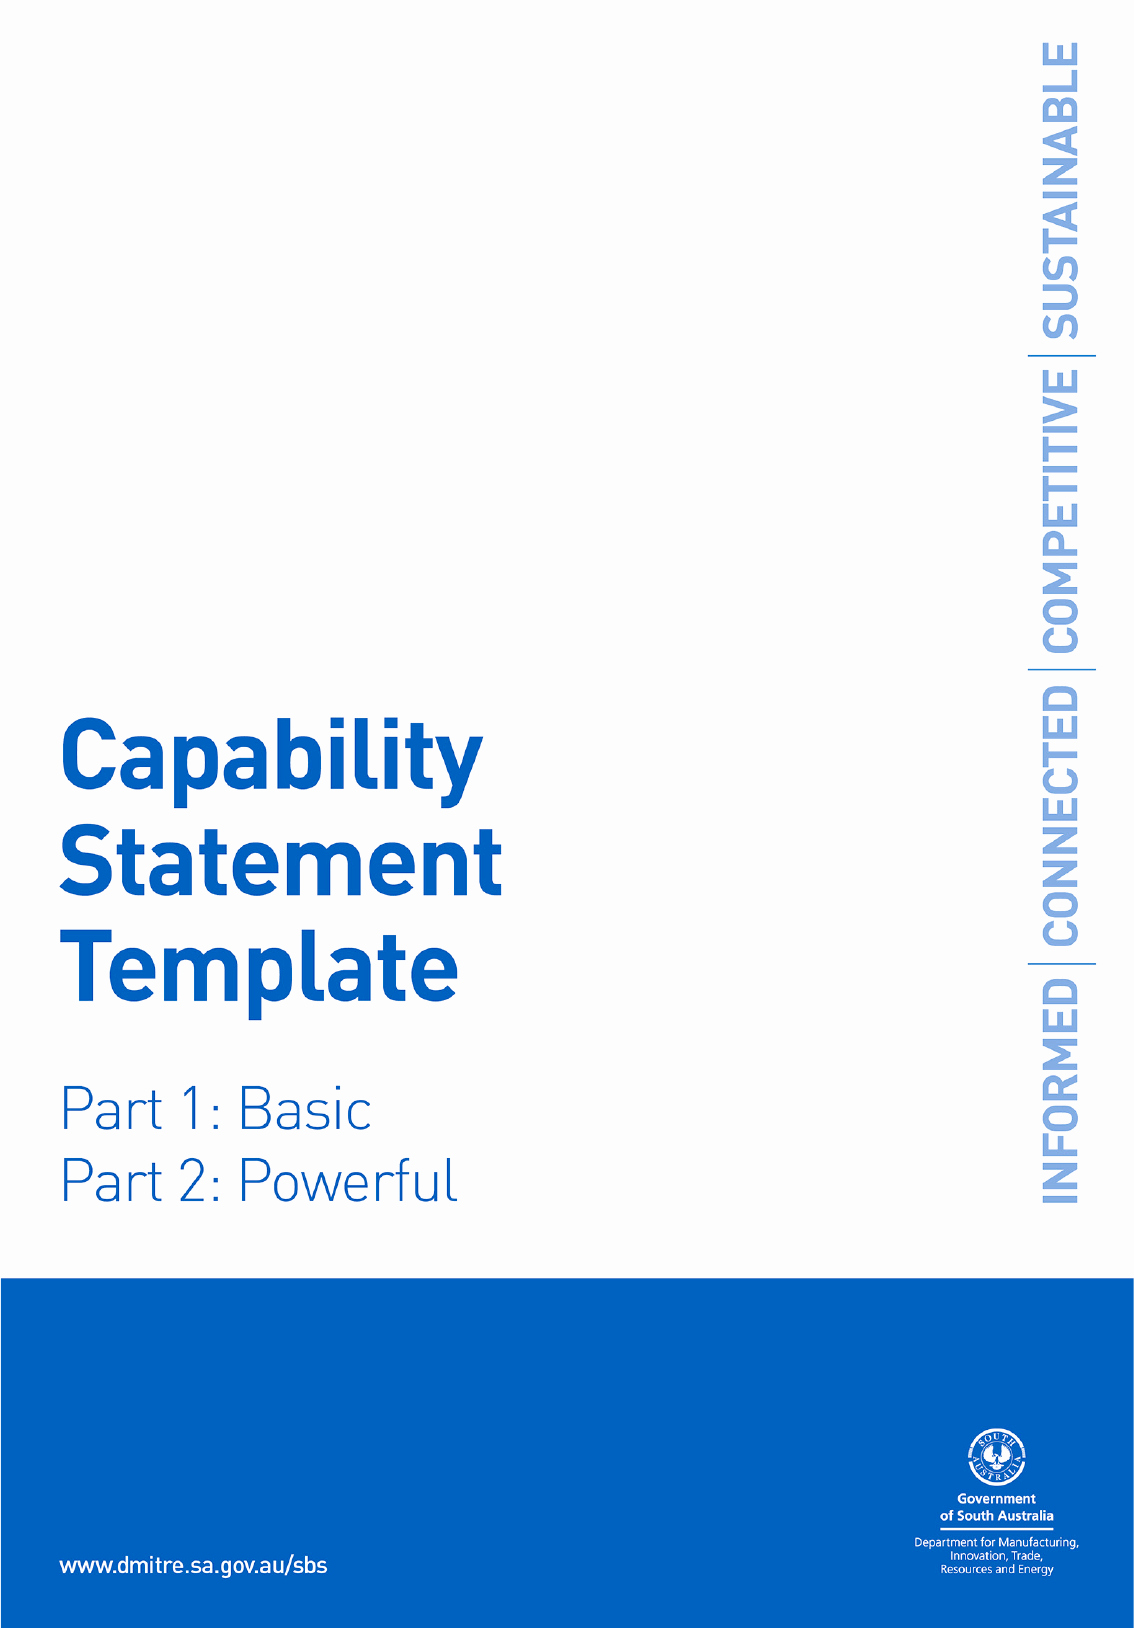 Capability Statement Template Word Lovely Capability Statement Template In Word and Pdf formats